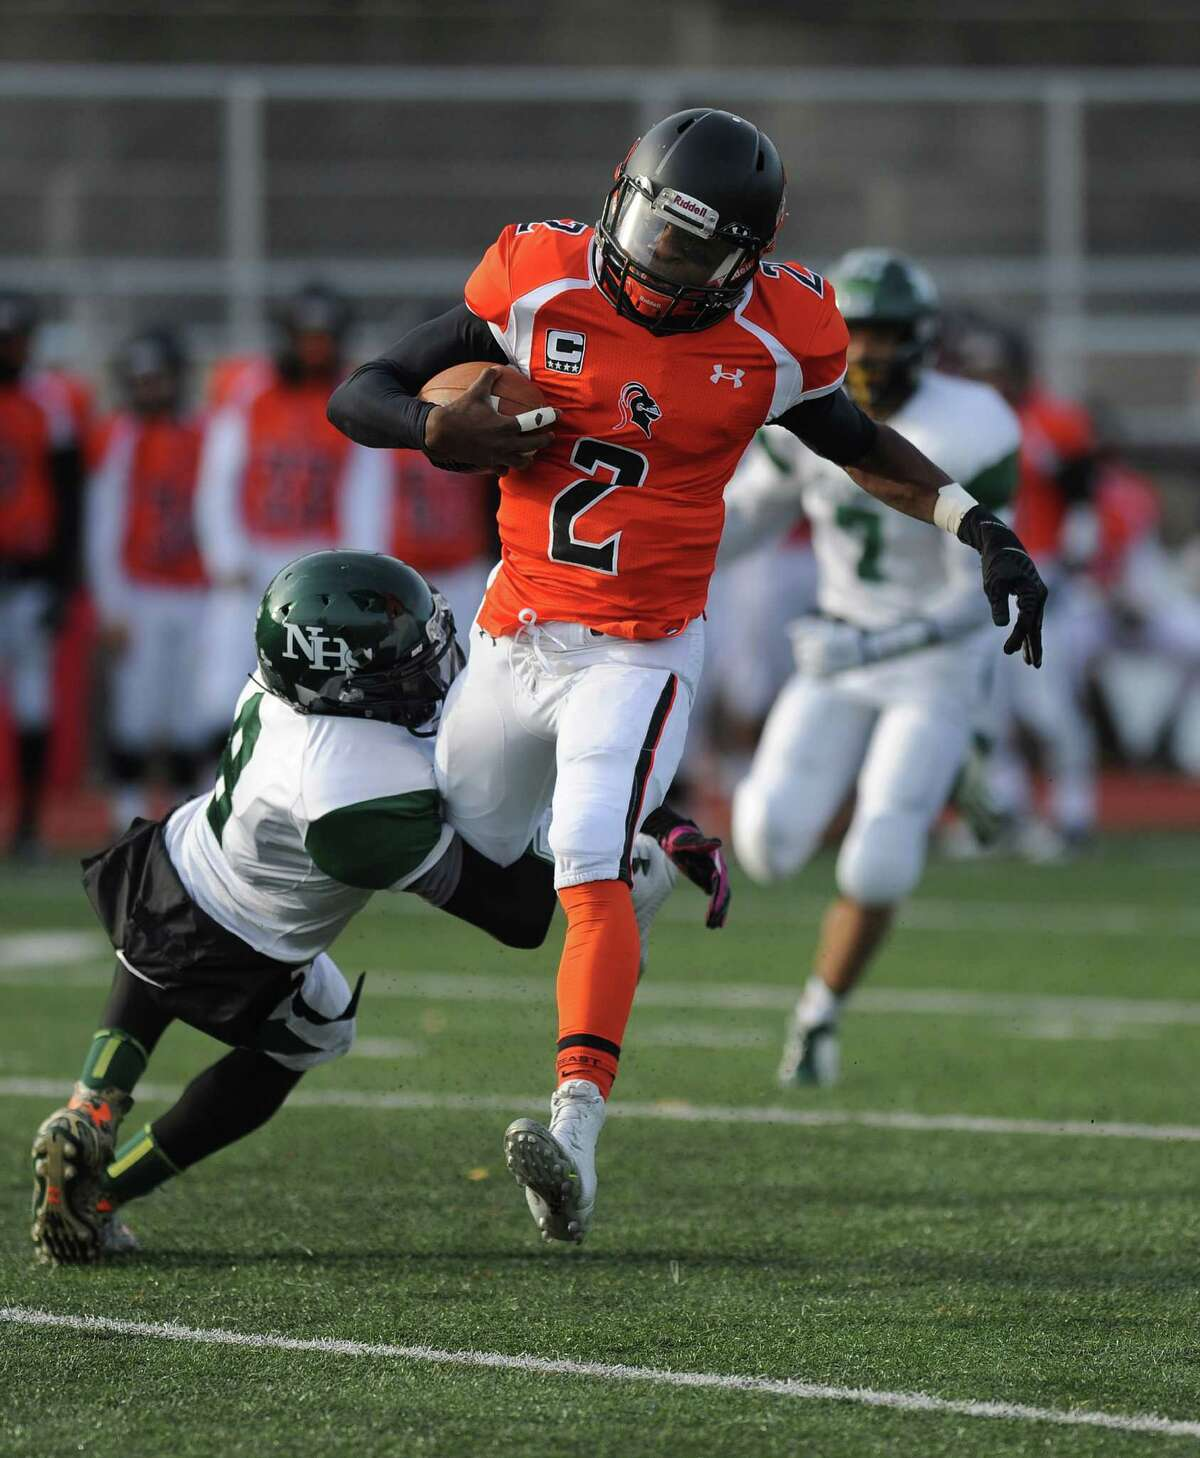 Stamford's Jalen Brown carries the ball during Saturday's football game against Norwalk on November 8, 2014, at Stamford High School.